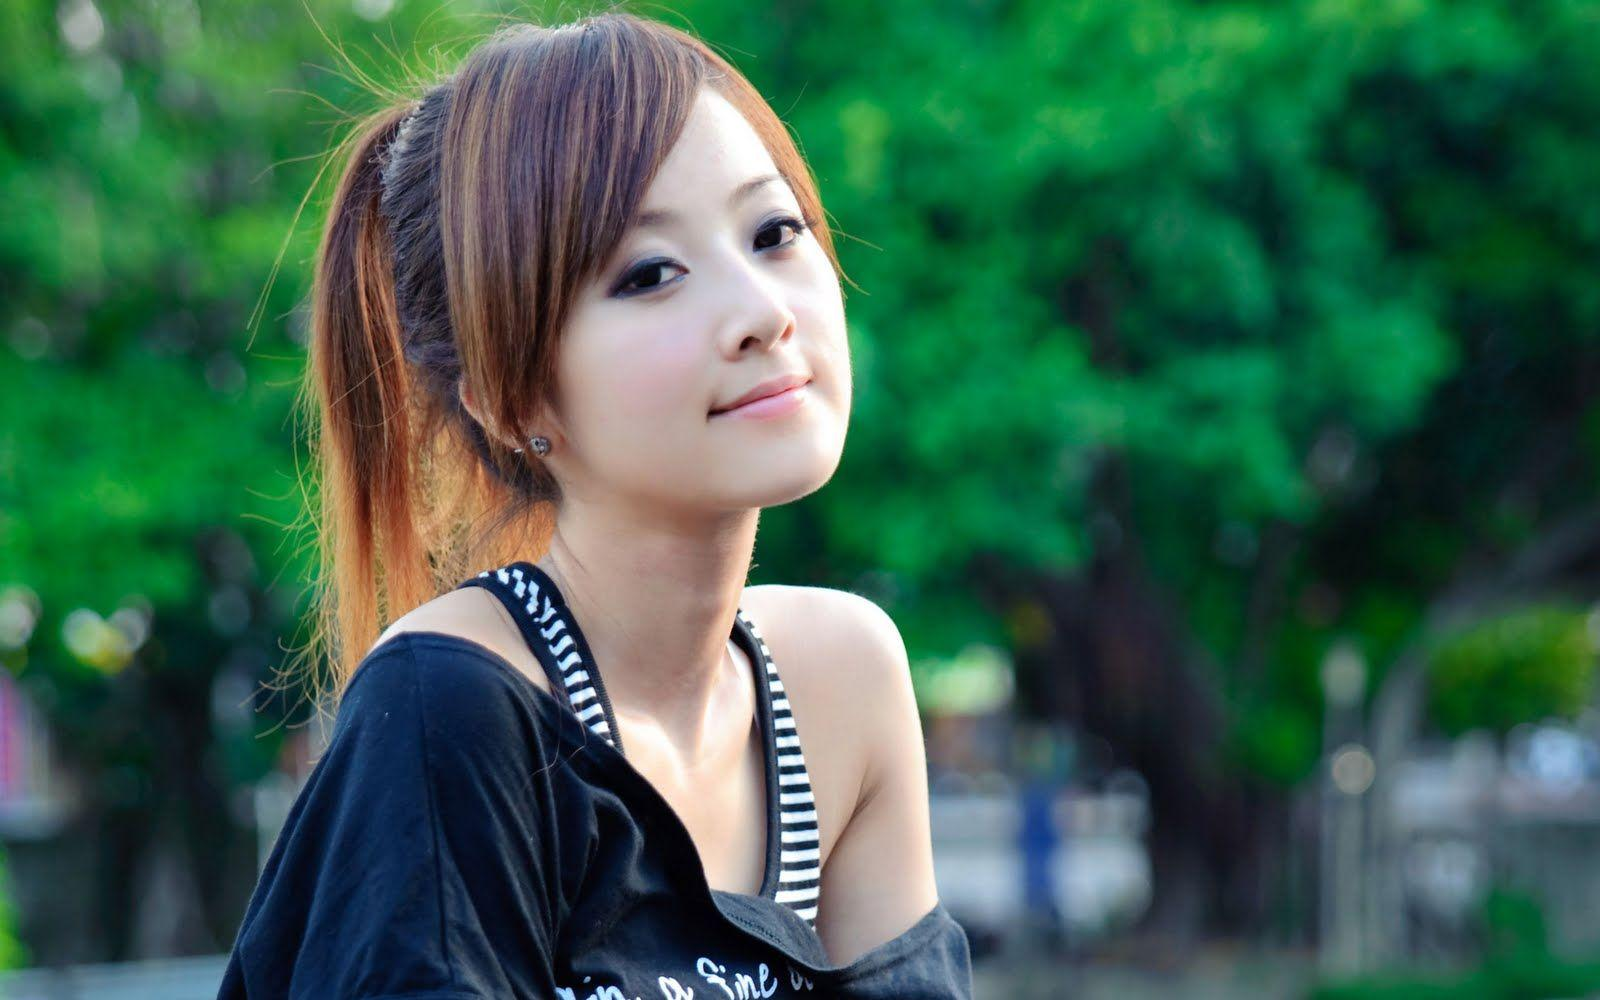 Cute asian wallpapers wallpaper cave - Asian schoolgirl wallpaper ...